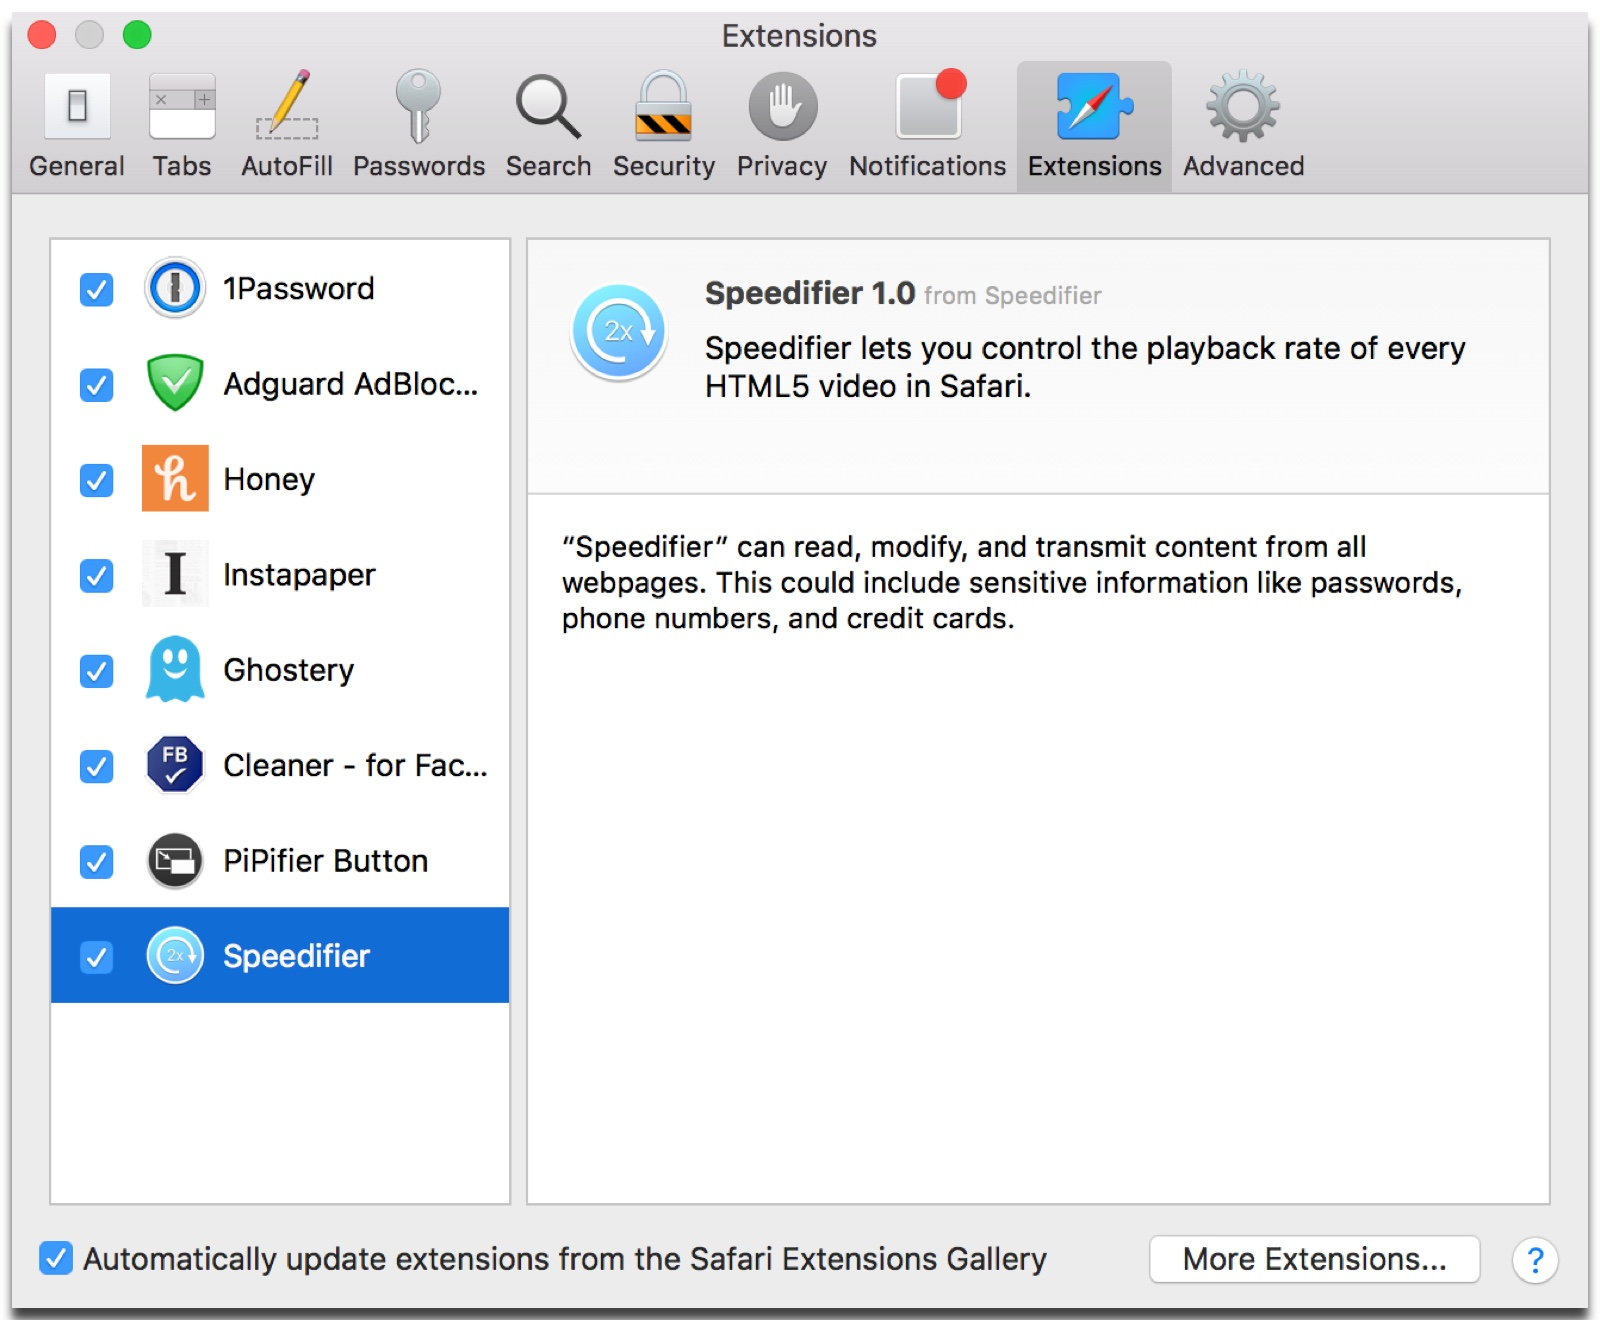 Enabling the Speedifier extension in Safari to control video speed.